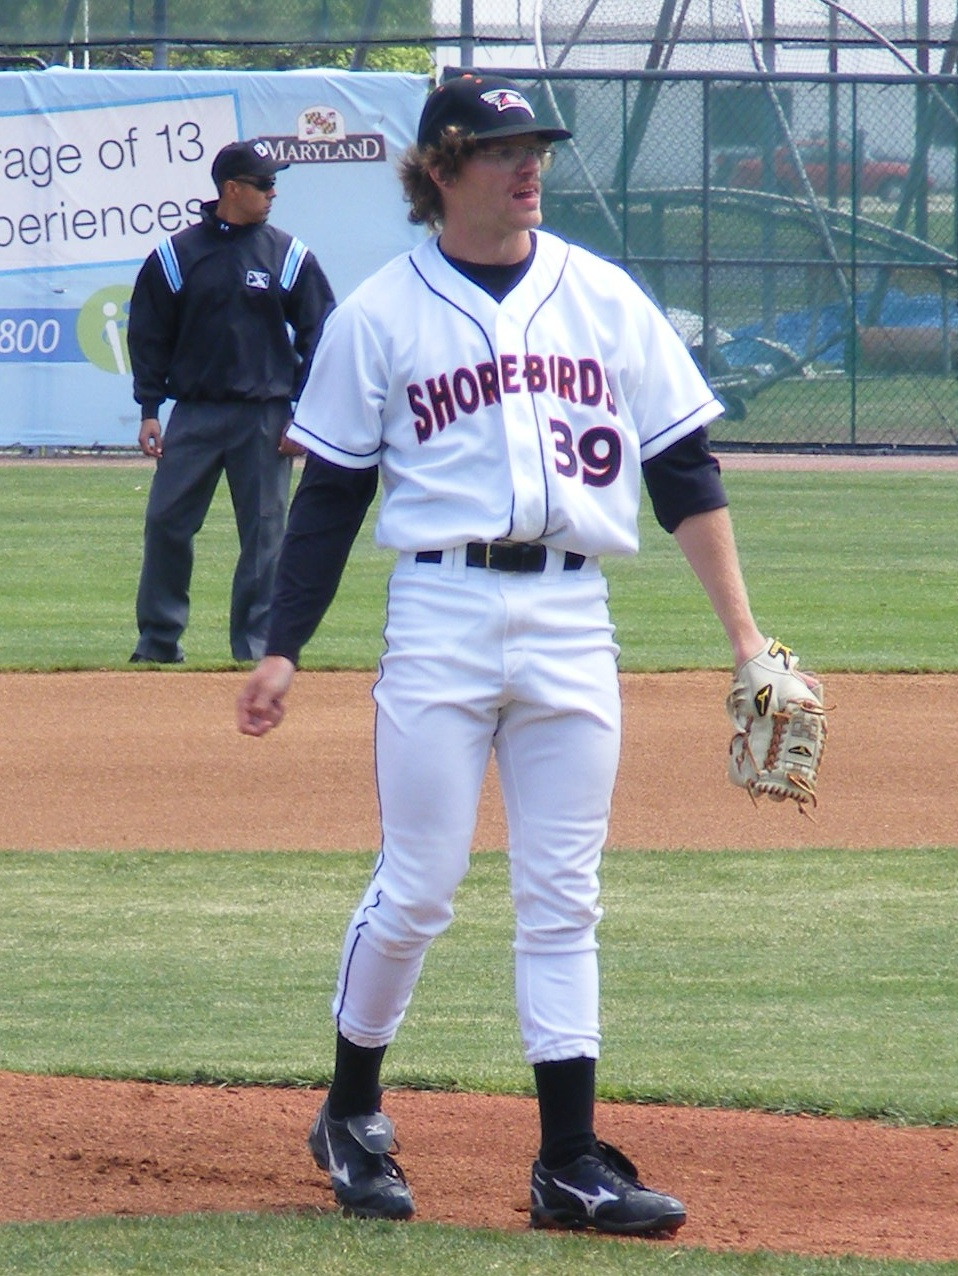 Ryan Berry warms up before his April 18 start against Hagerstown. It turned out to be a rough beginning as he allowed 4 runs in the opening frame but Ryan settled down to pitch 6 innings in an extra-inning 9-7 loss.